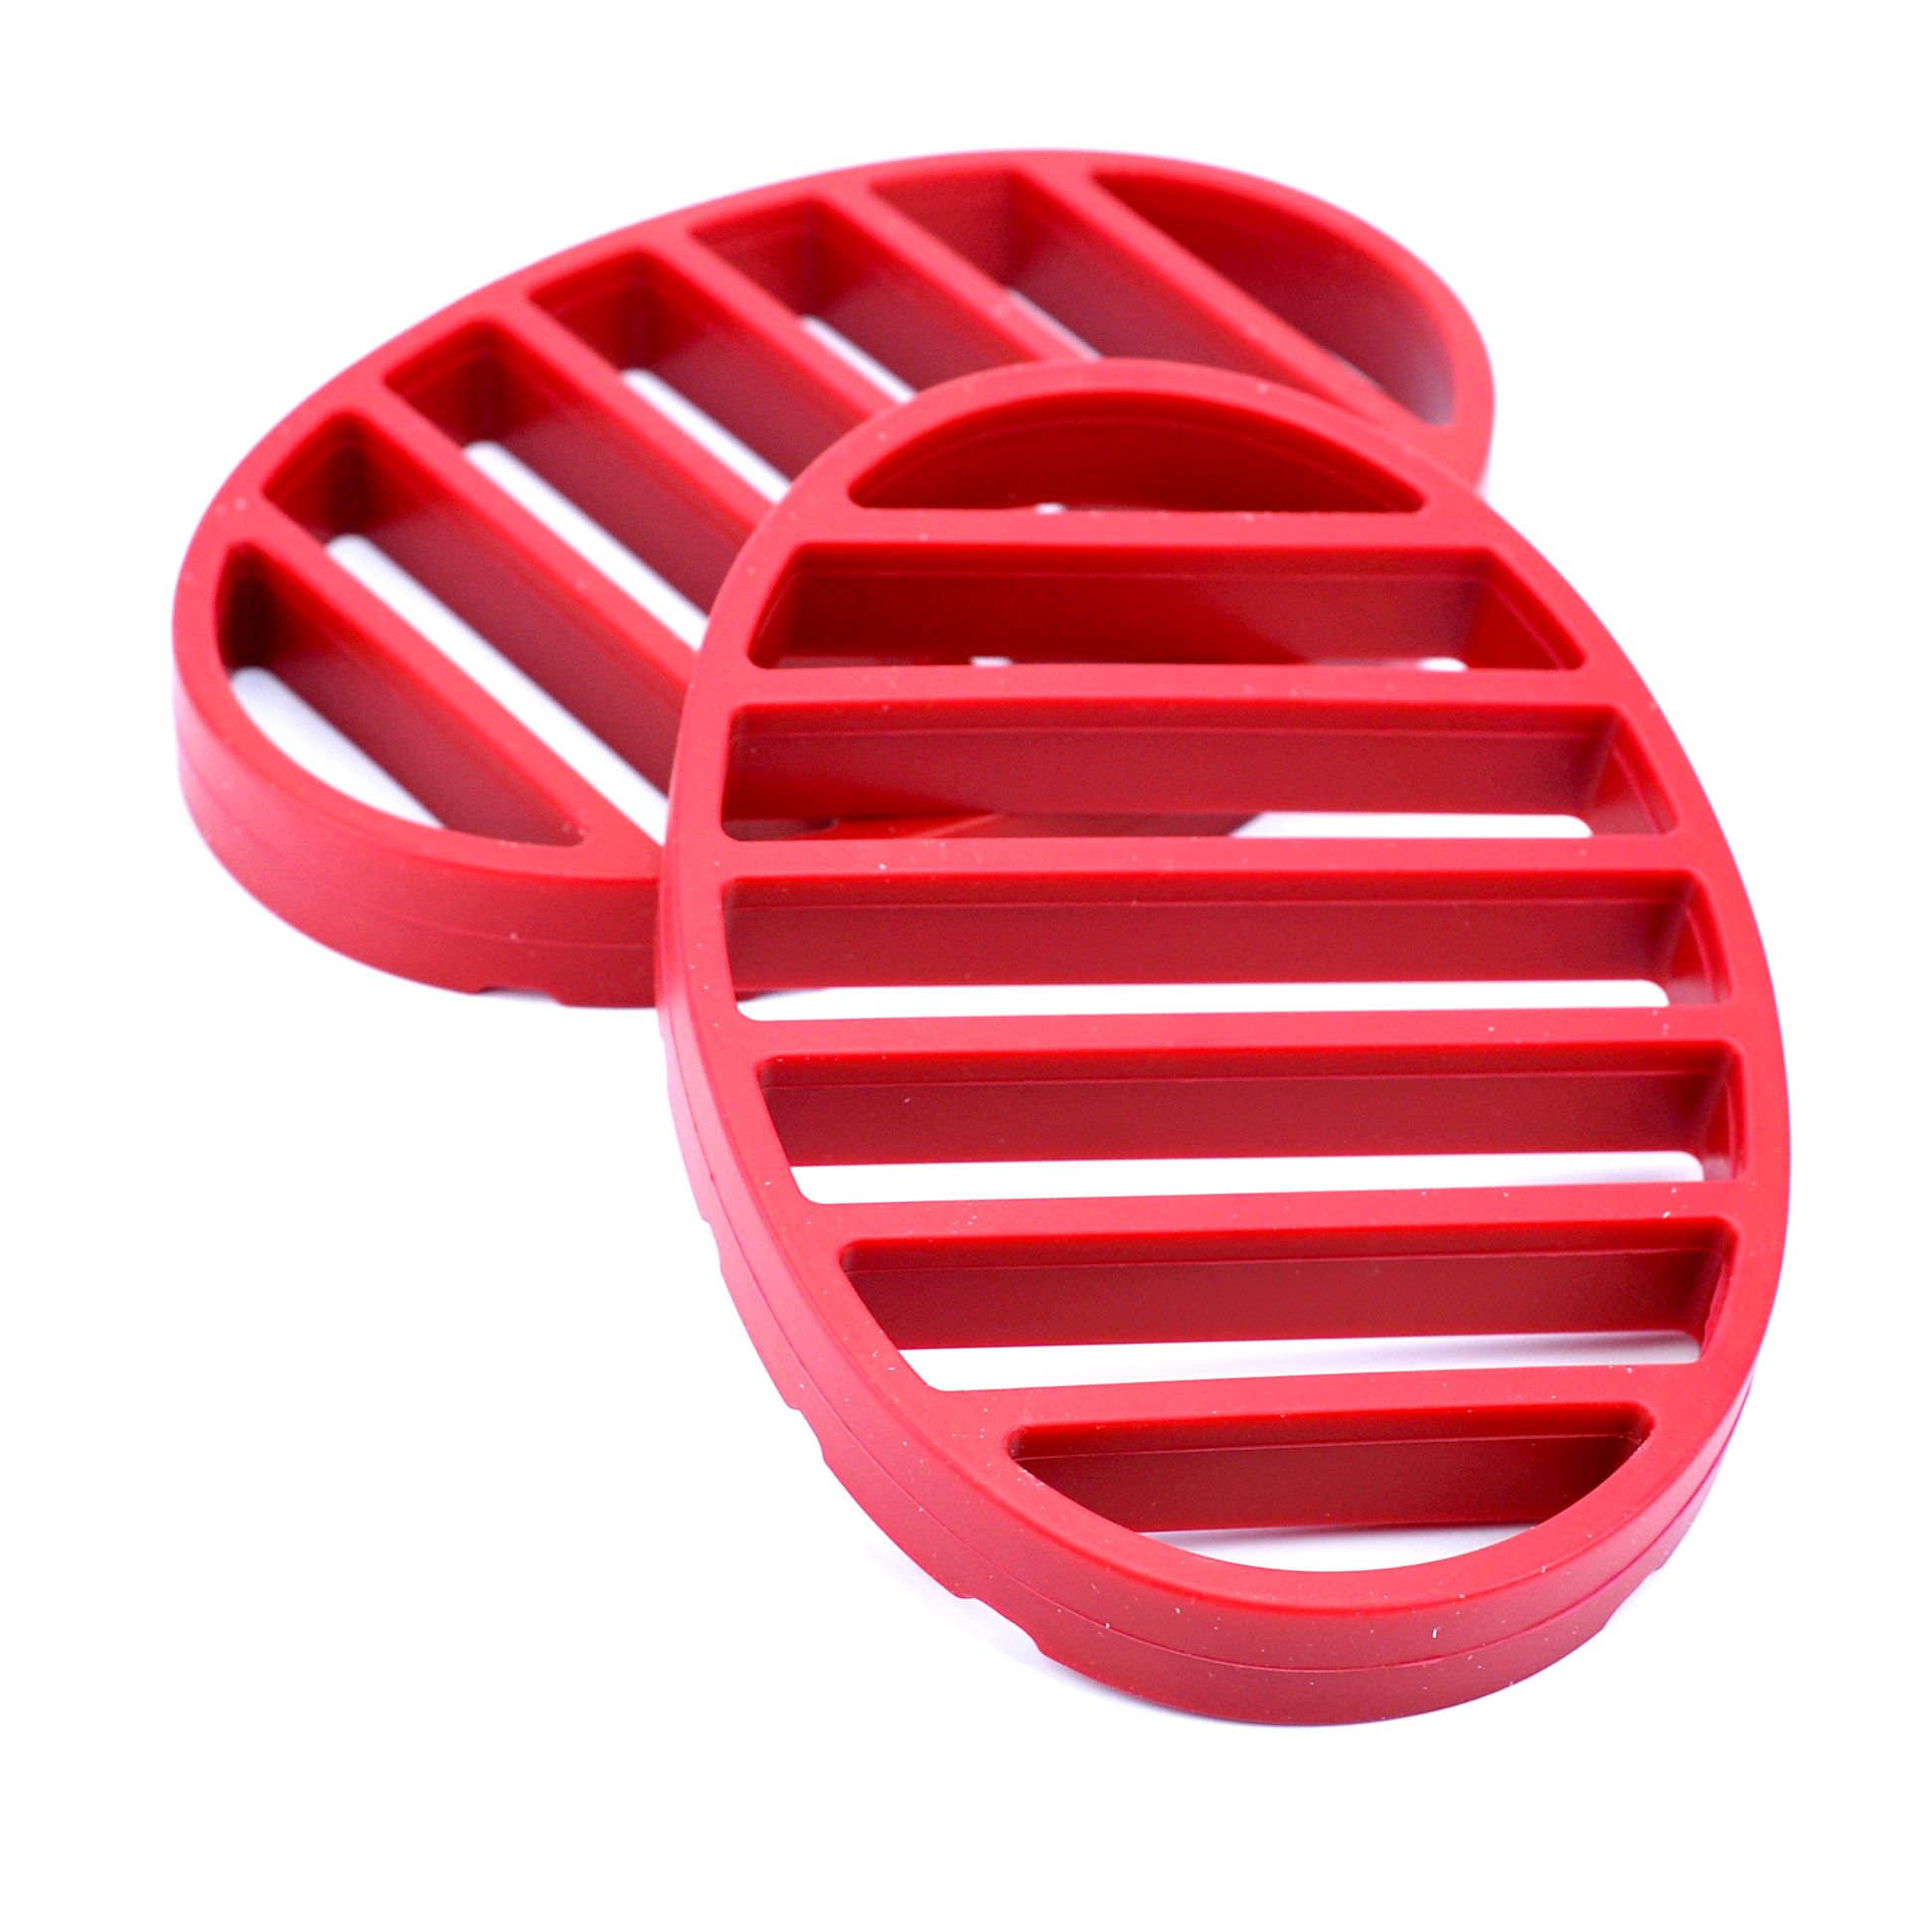 Roasting Rack, Nonstick Silicone Oval Roasting Rack For Turkey Red (Pack Of 2) by Norpro Kitchenware